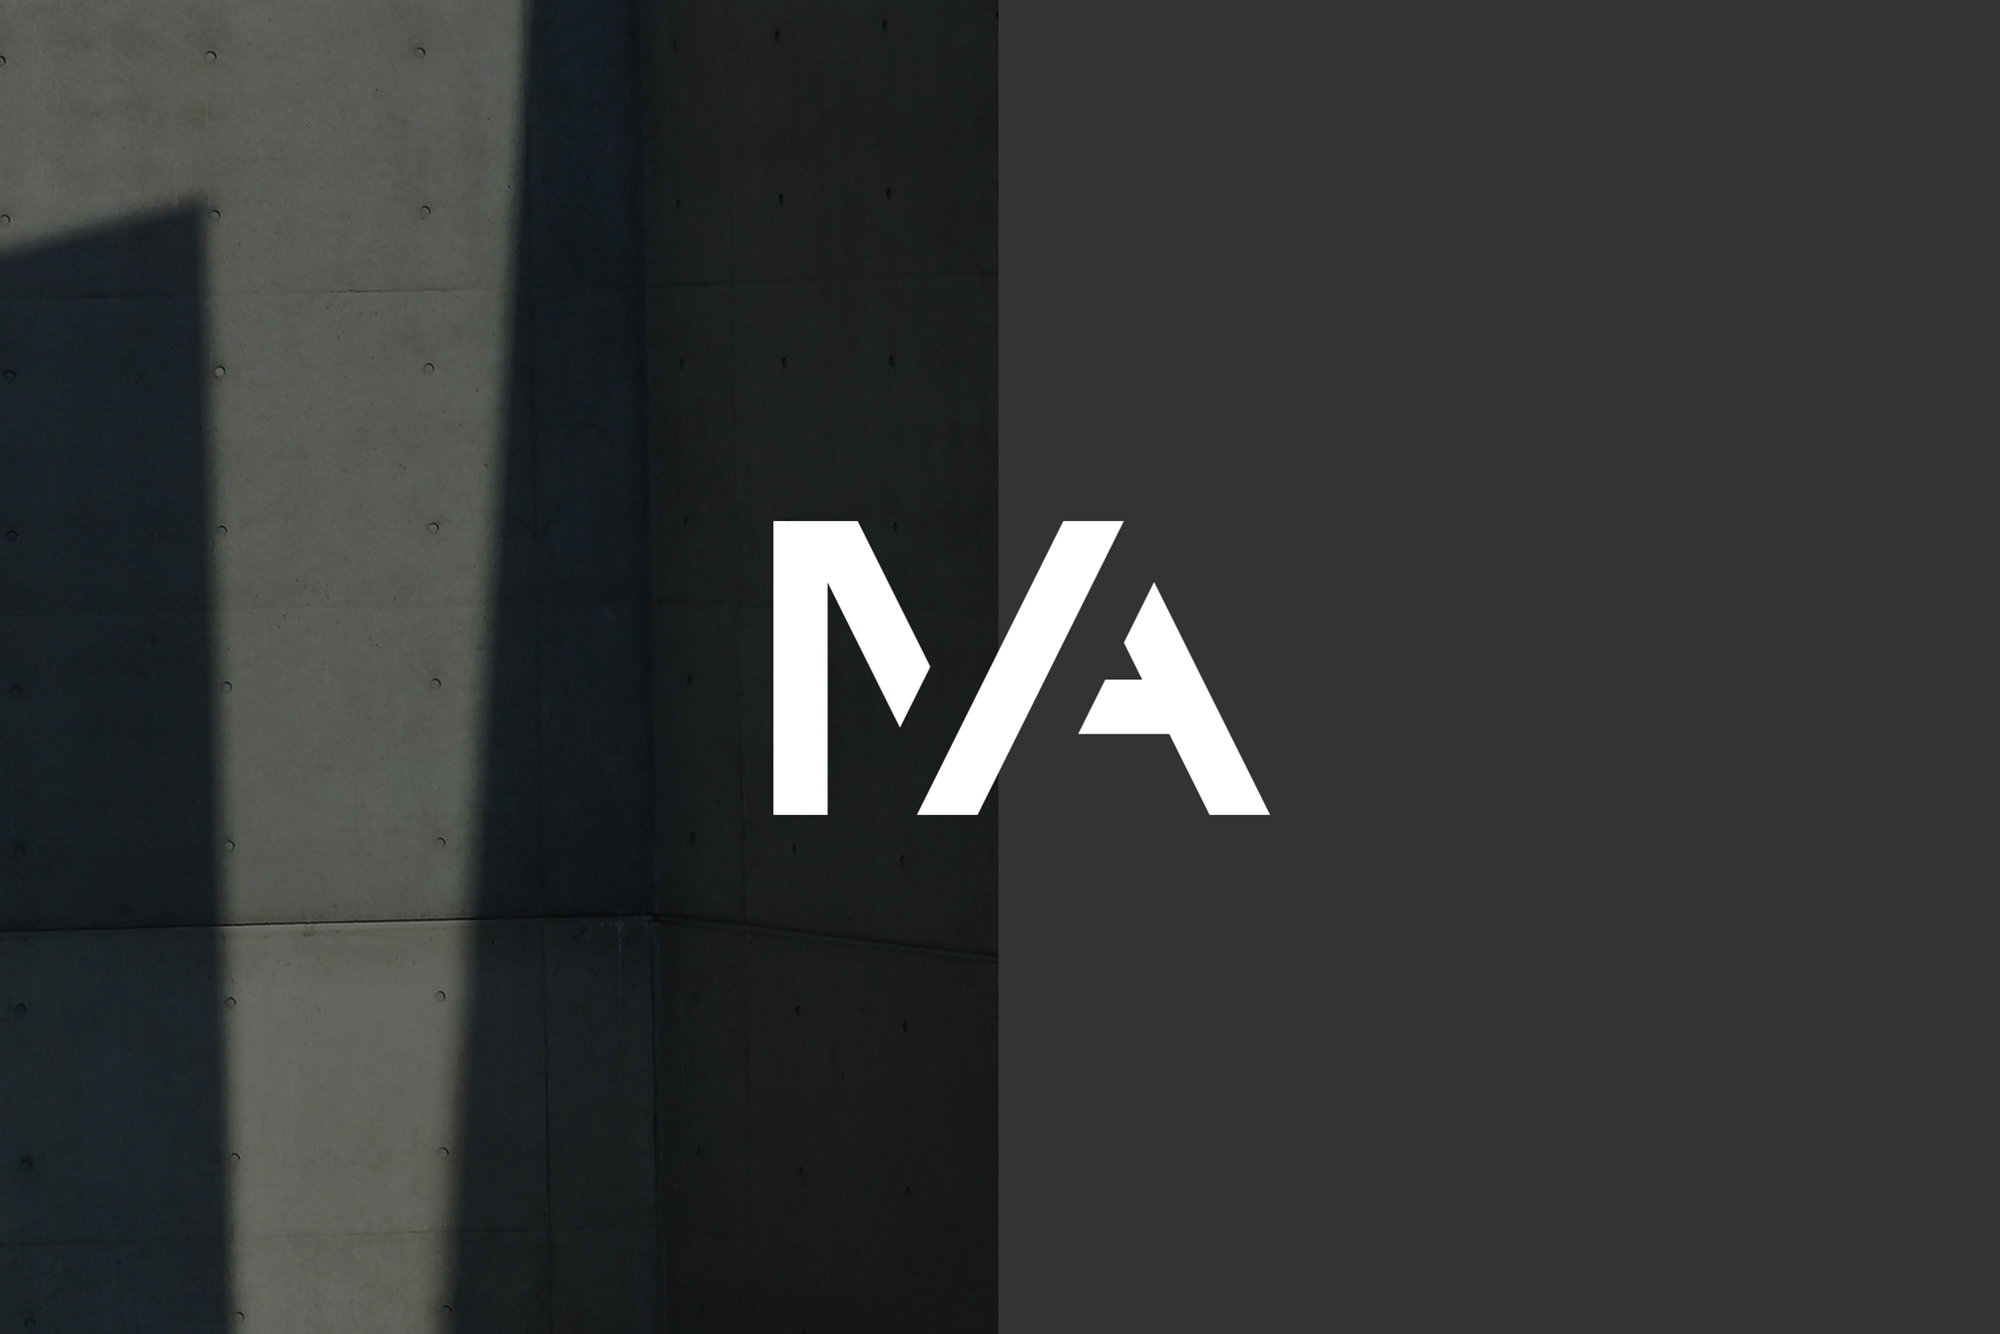 Cover image: M-A